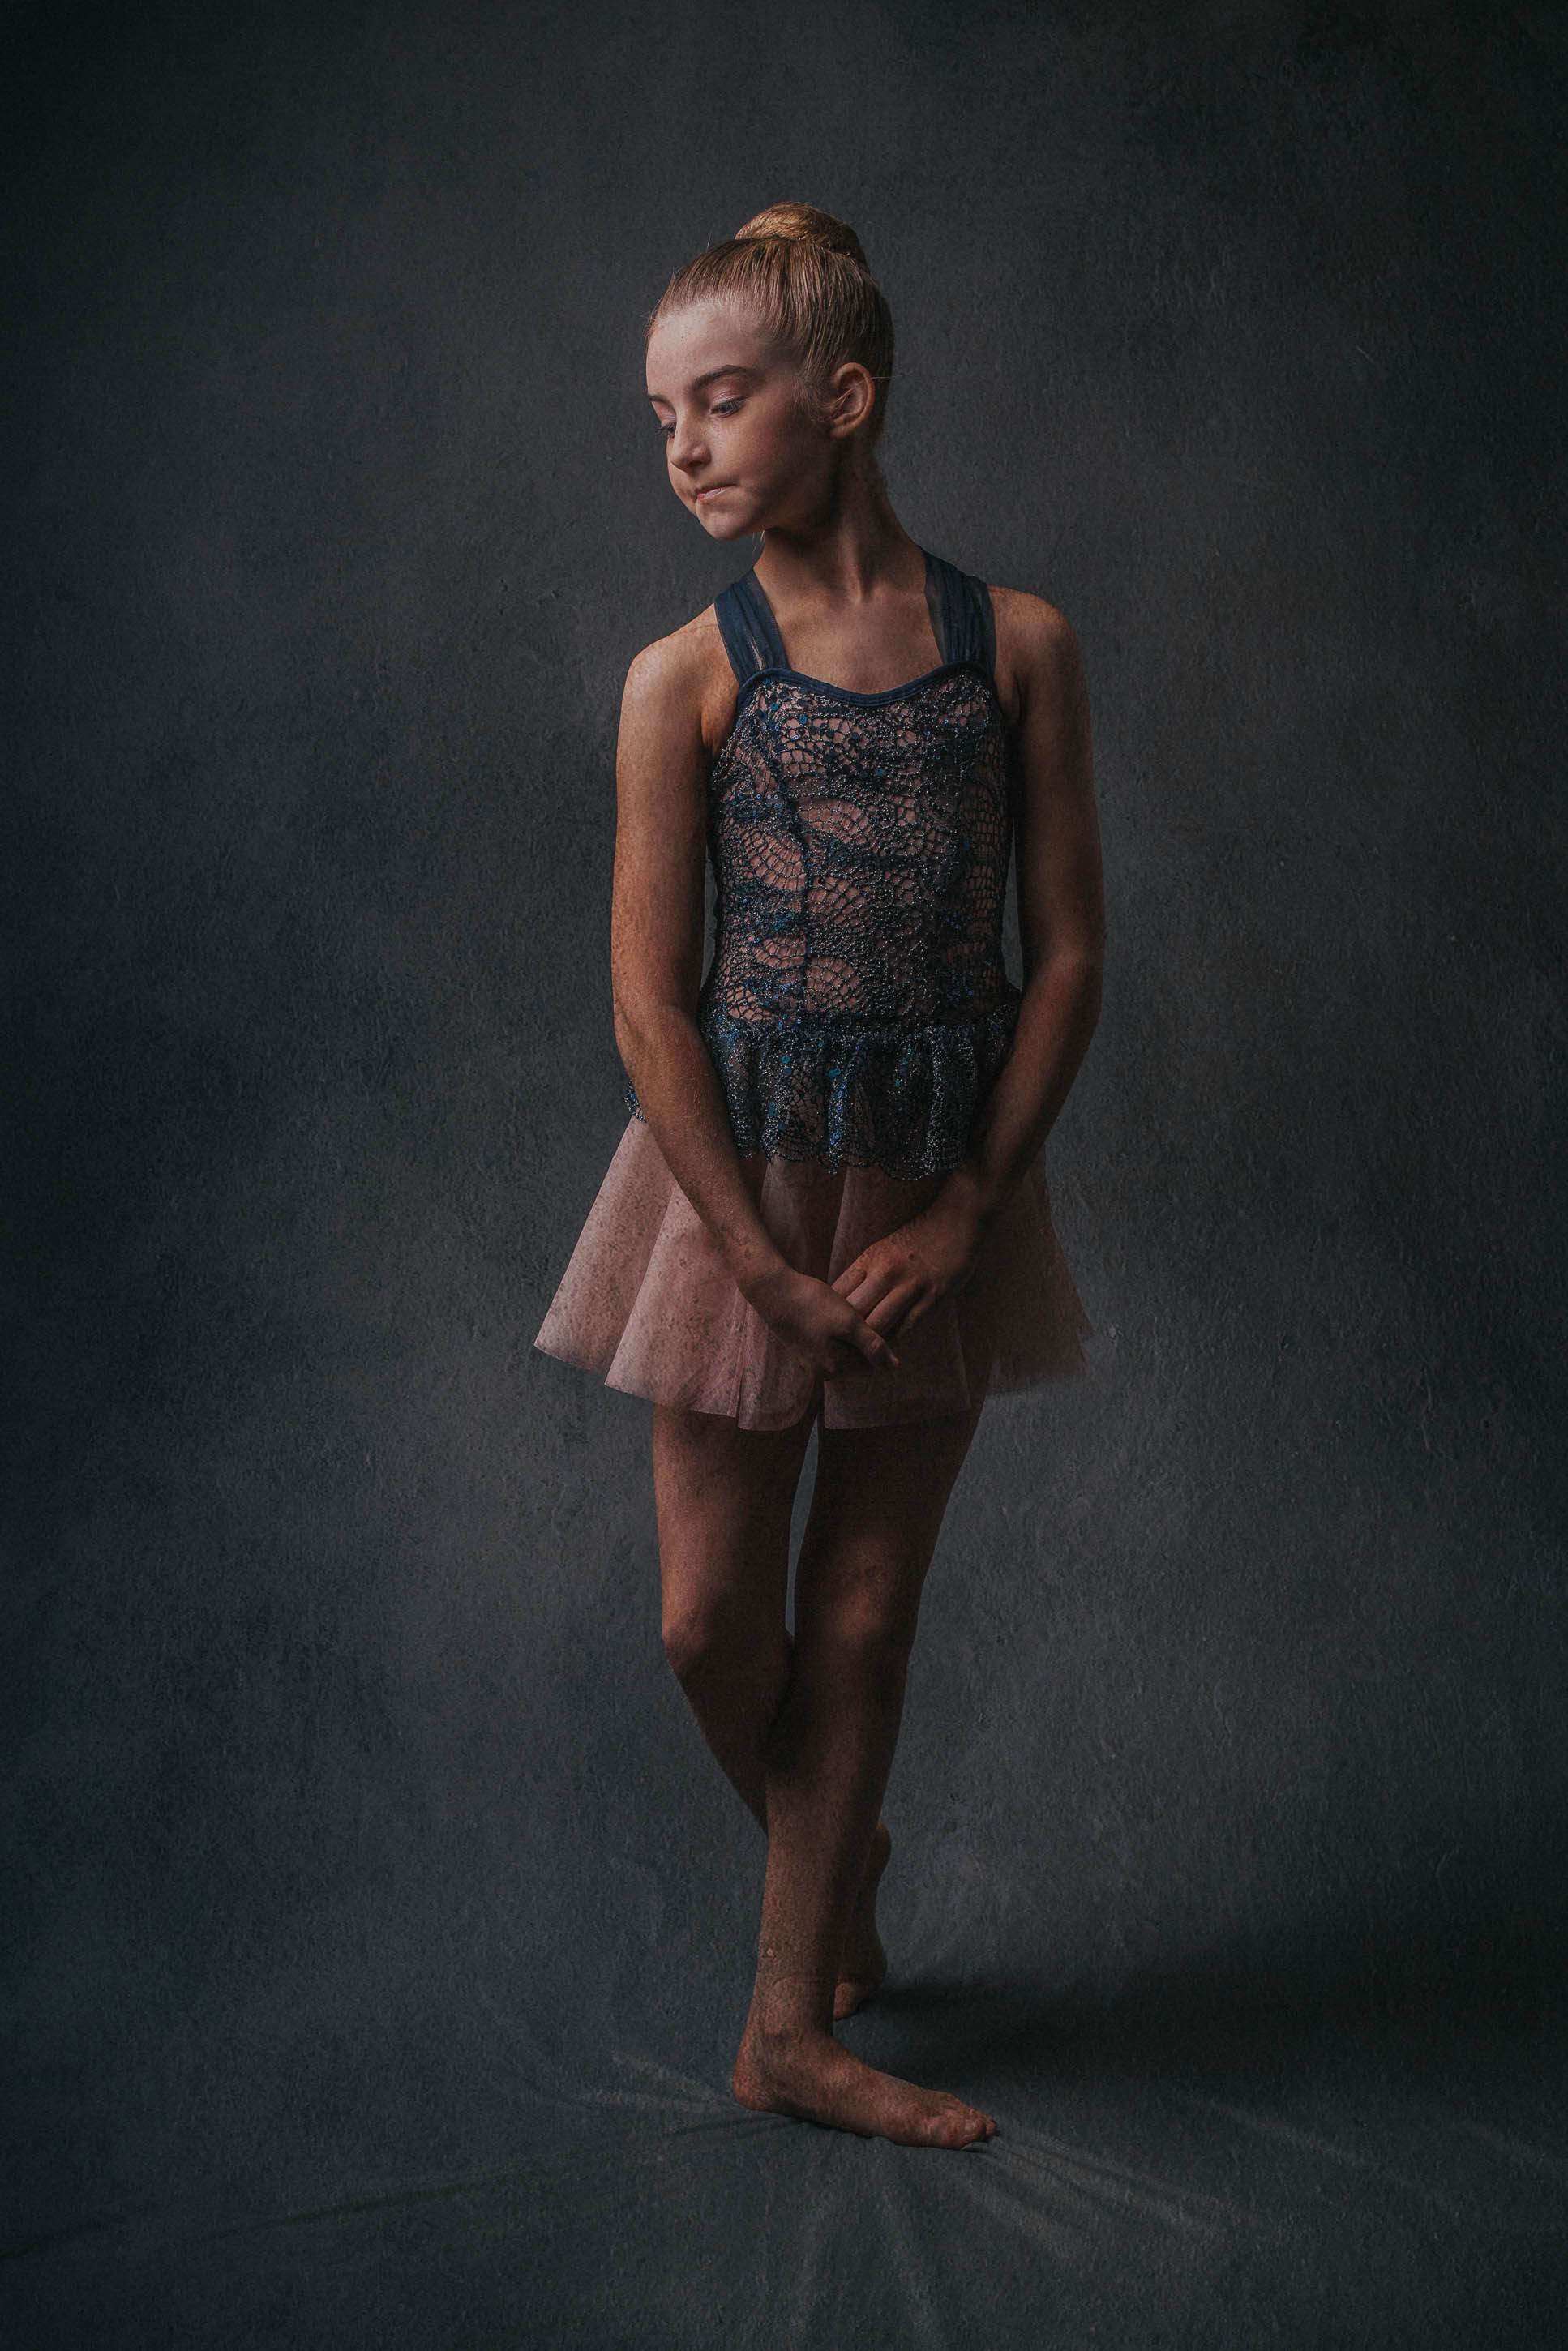 Fine Art Ballet Day-237-Edit.jpg